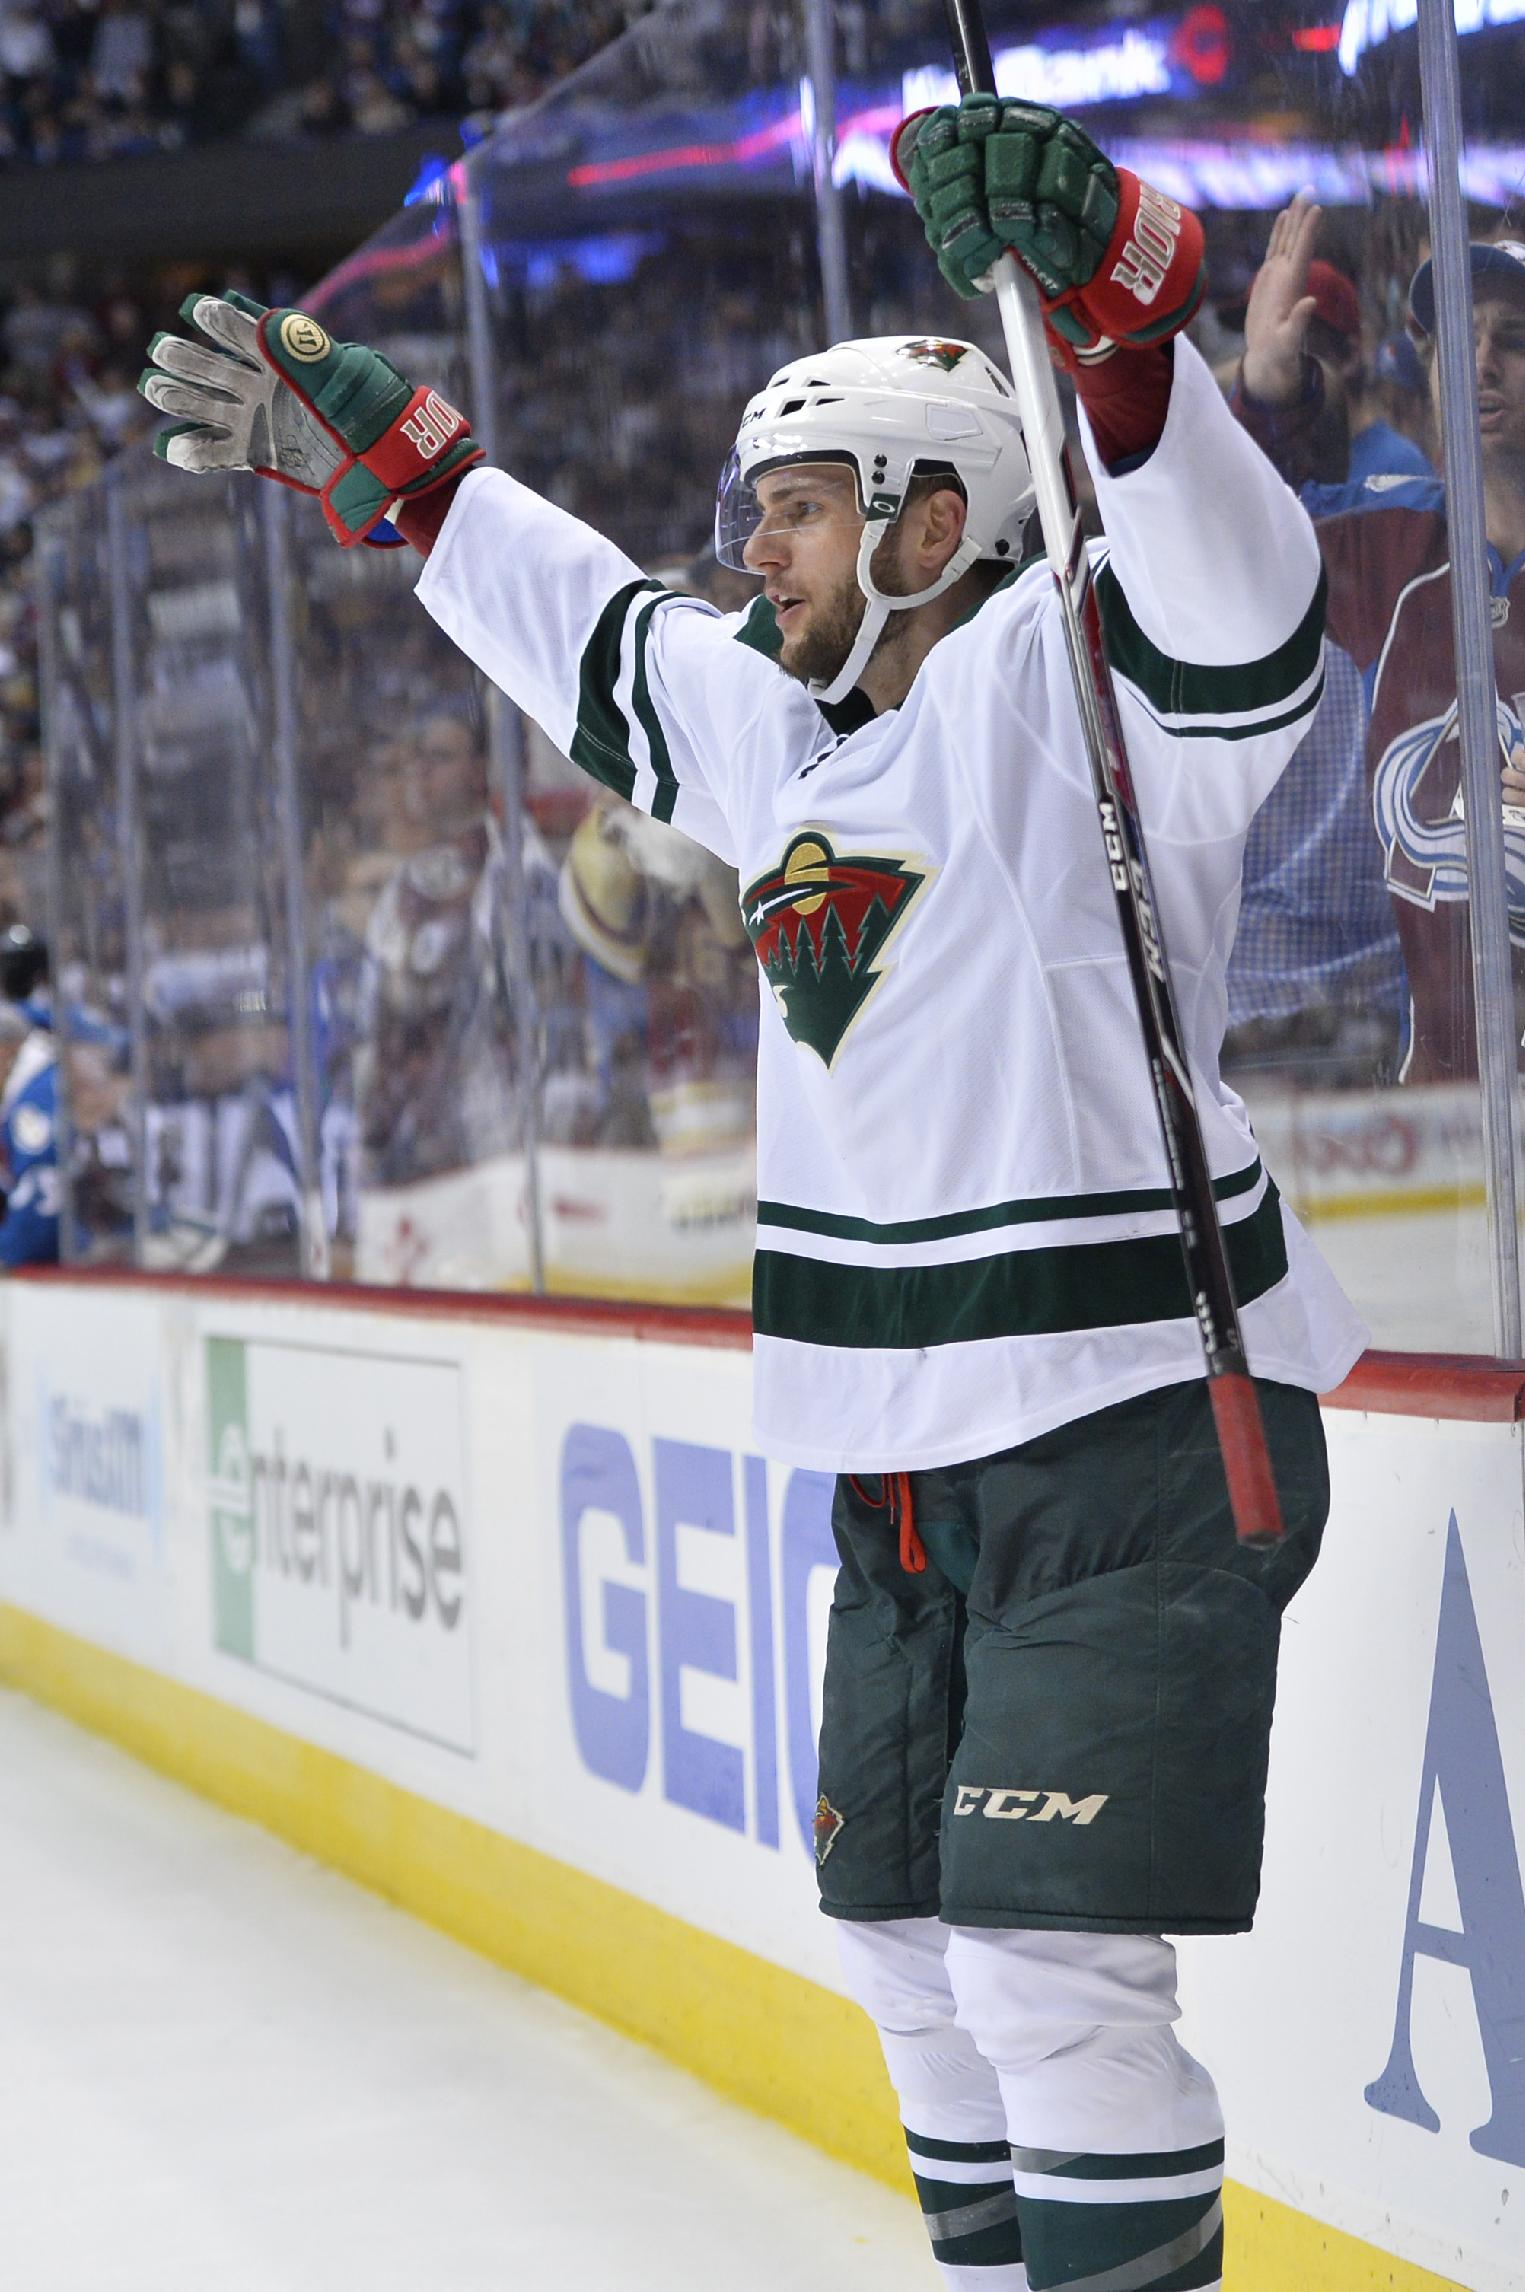 Minnesota Wild defenseman Marco Scandella (6) celebrates a goal against the Colorado Avalanche in the third period of Game 2 of an NHL hockey first-round playoff series on Saturday, April 19, 2014, in Denver. The Avalanche beat the Wild 4-2